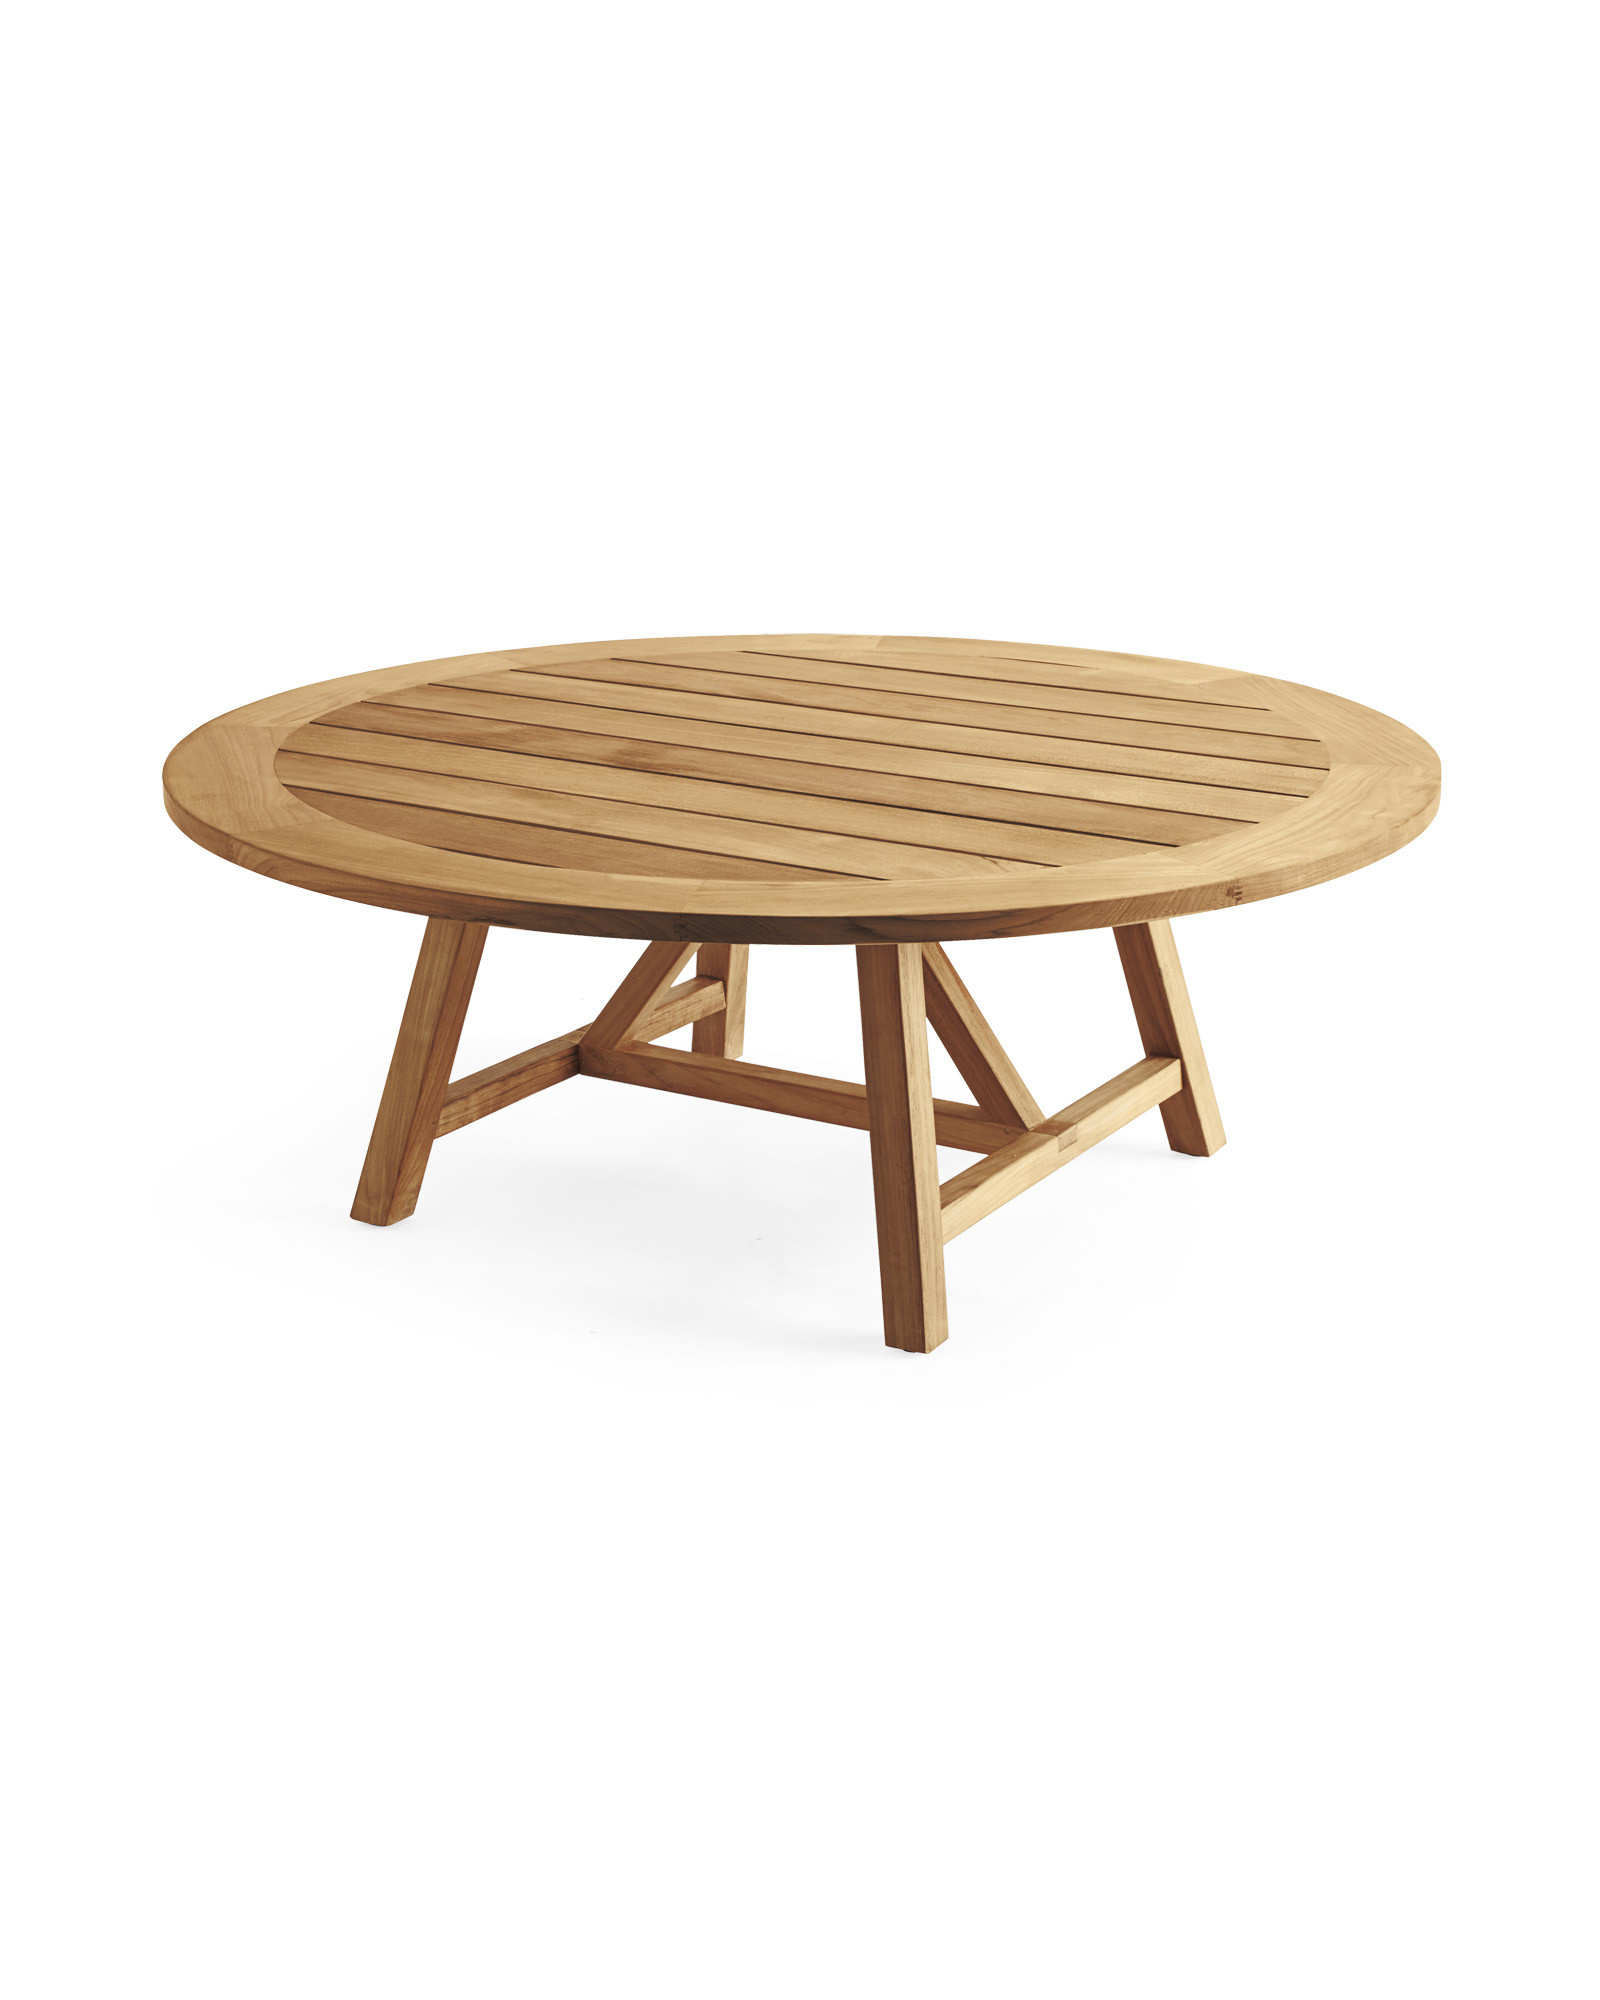 Teak Coffee Table Outdoor Fresh Round Teak Coffee Table Pertaining To Most Up To Date Round Teak Coffee Tables (View 14 of 20)